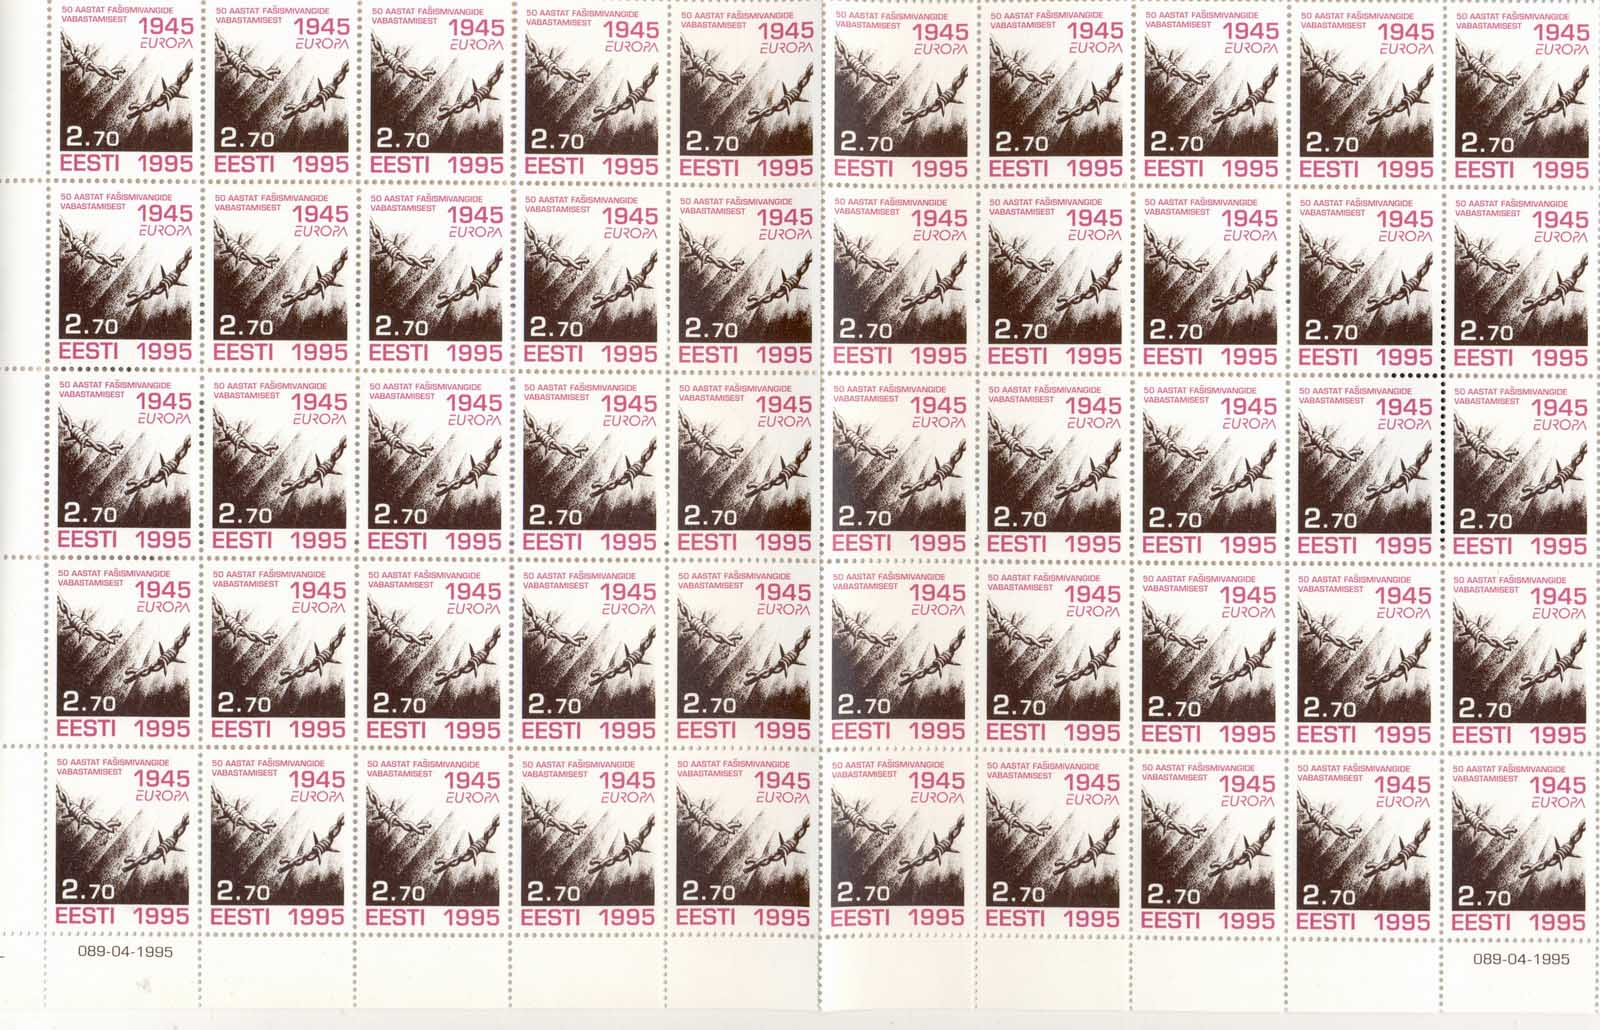 Estonia 1995 Europa, Liberation of Nazi Concentration Camps 50th Anniv. Sheet 50 (folded) MUH